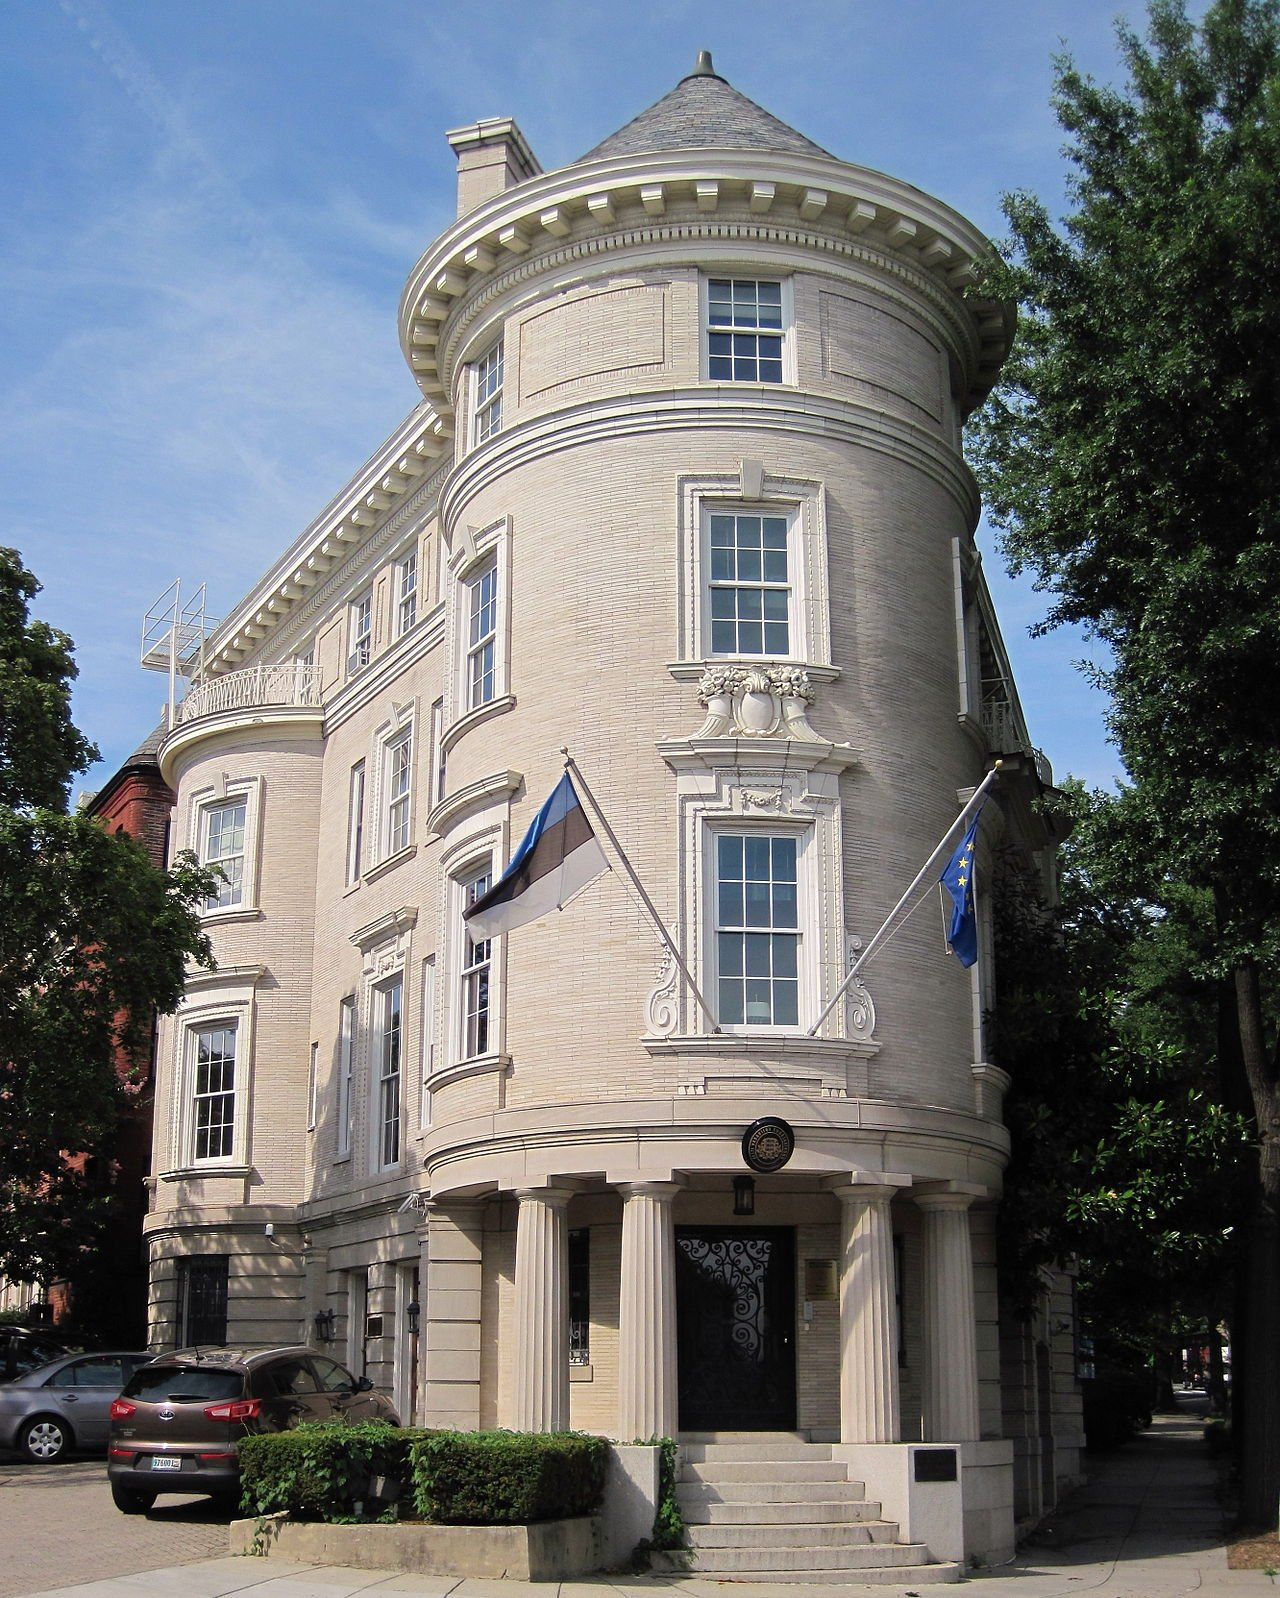 The Estonian chancery, designed in the Beaux Arts architectural style, is considered among the most striking on Embassy Row. Its location on the corner of two streets is reminiscent of the Flatiron Building in New York. Wikimedia Commons.